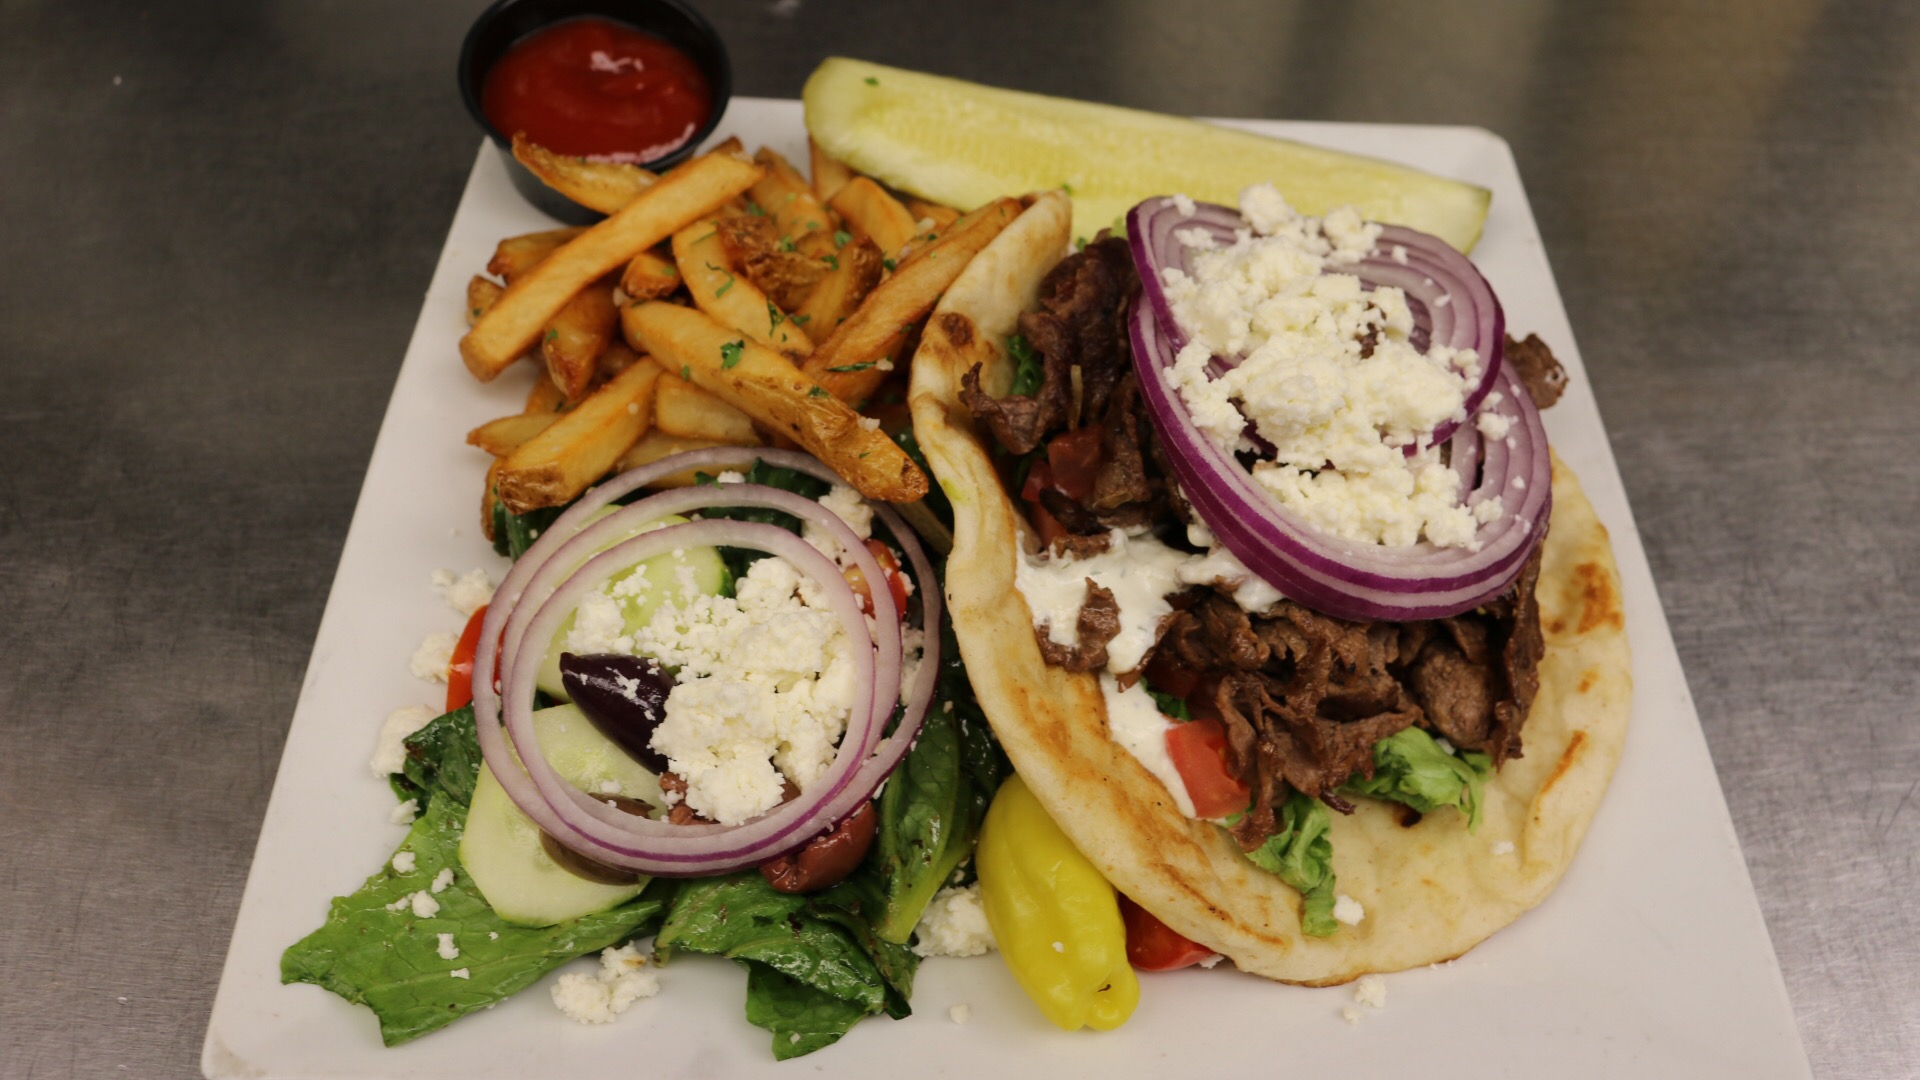 Steak Gyro with rilled steak with lettuce, tomato, cucumbers, red onion and feta, served on pita with tzatziki sauce, garlic fries and a Greek salad.